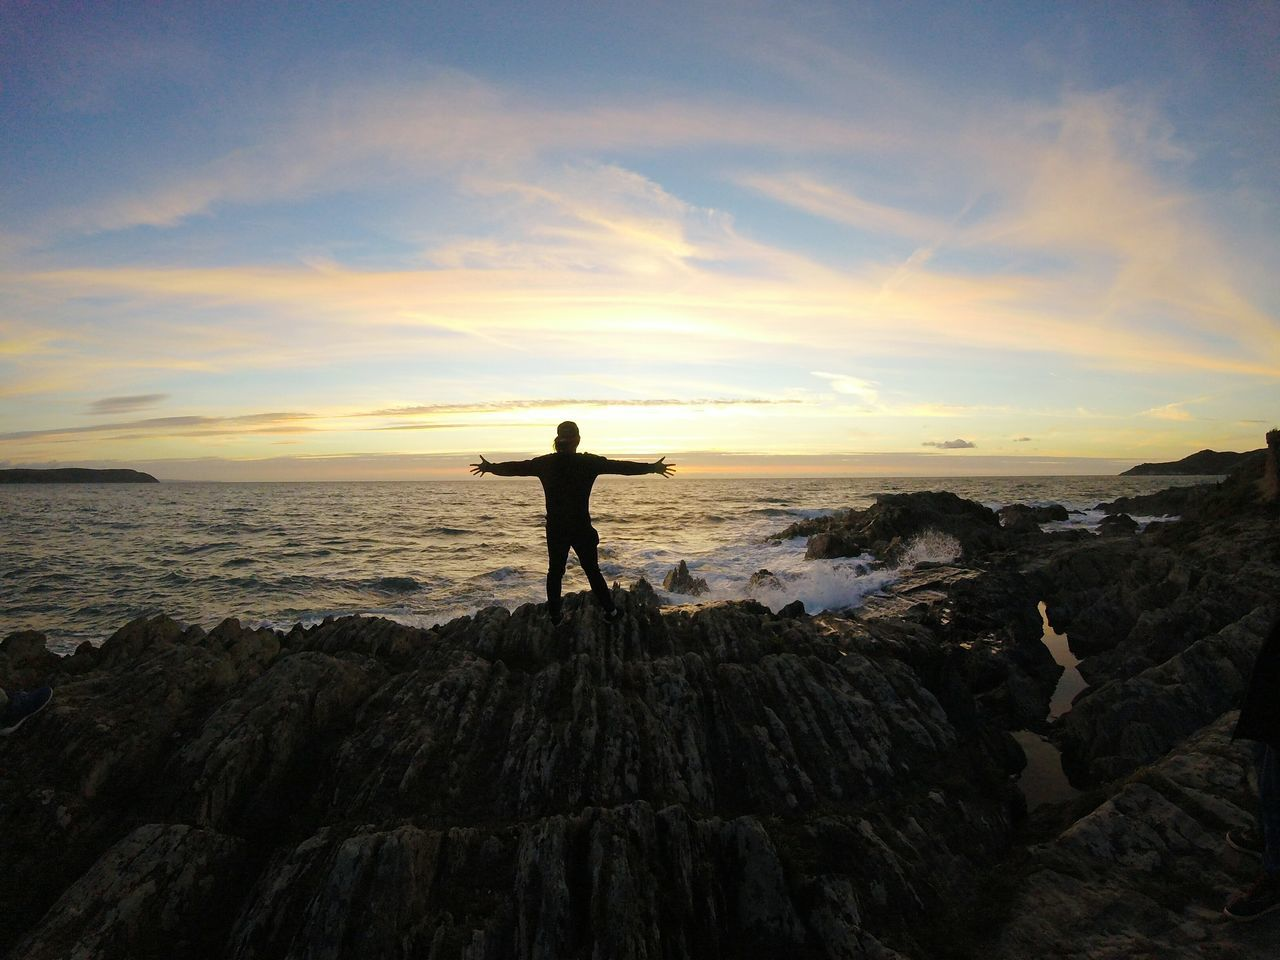 Sunset views 👍 Photographing Sky Photographer Silhouette Sunset Outdoors Photography Themes Standing Technology Nofilter Adventure Landscape Gopro